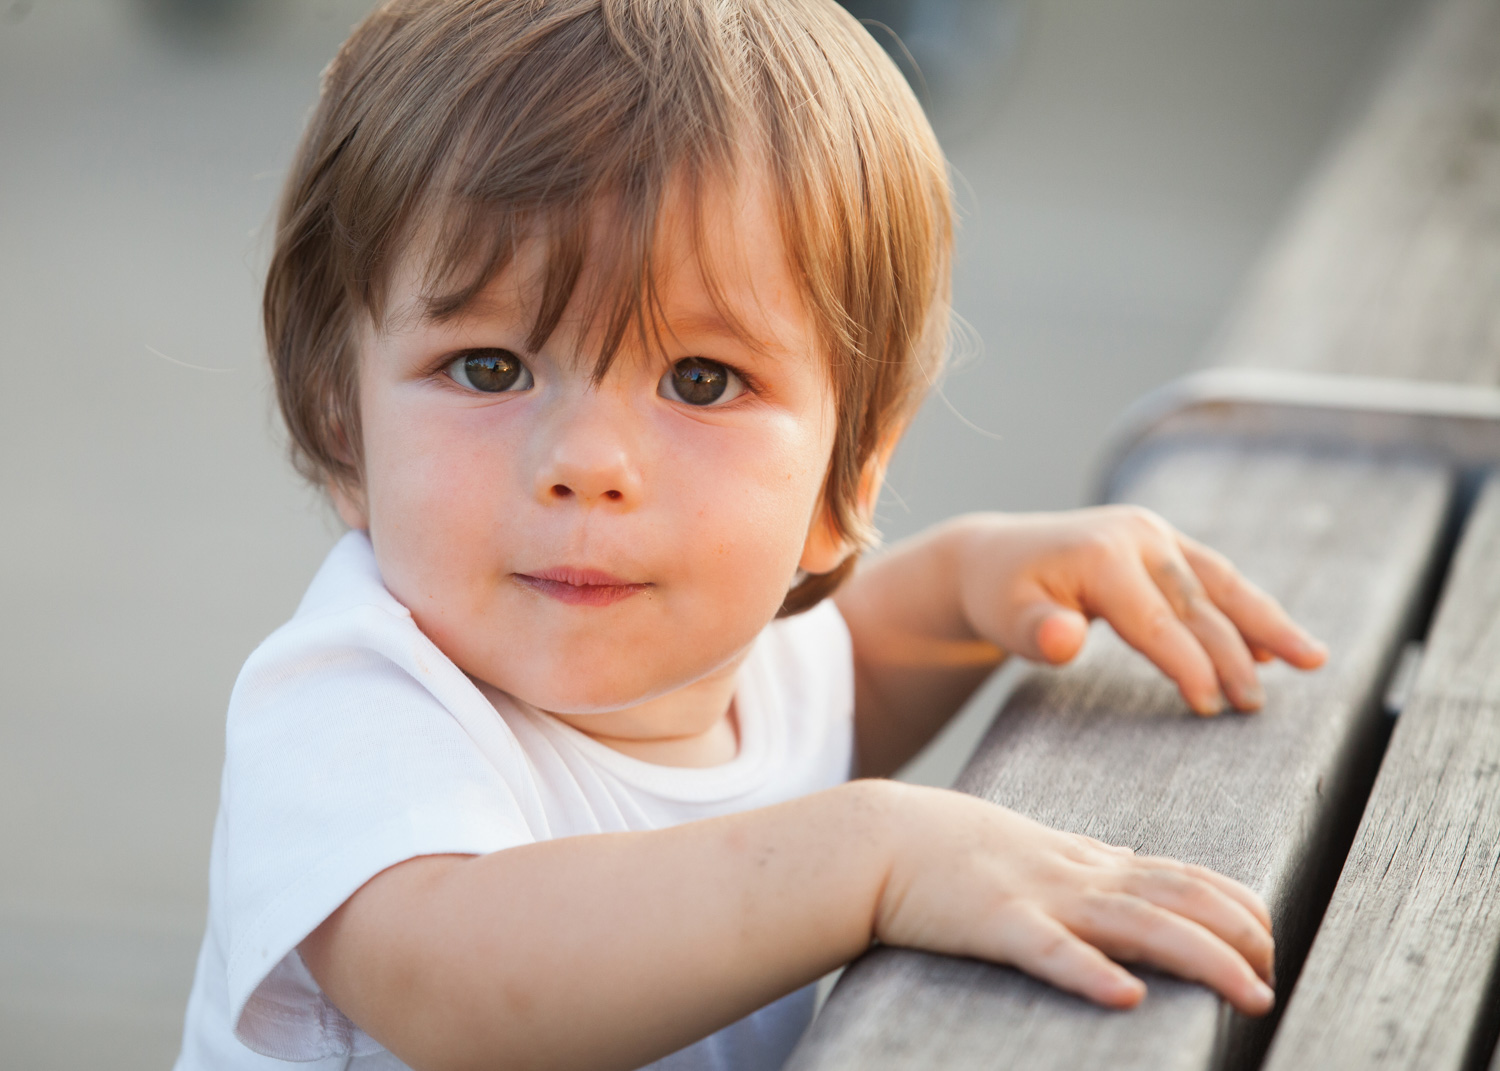 Close up photo of a 2 year old boy wearing a white shirt, leaning on a wood bench.